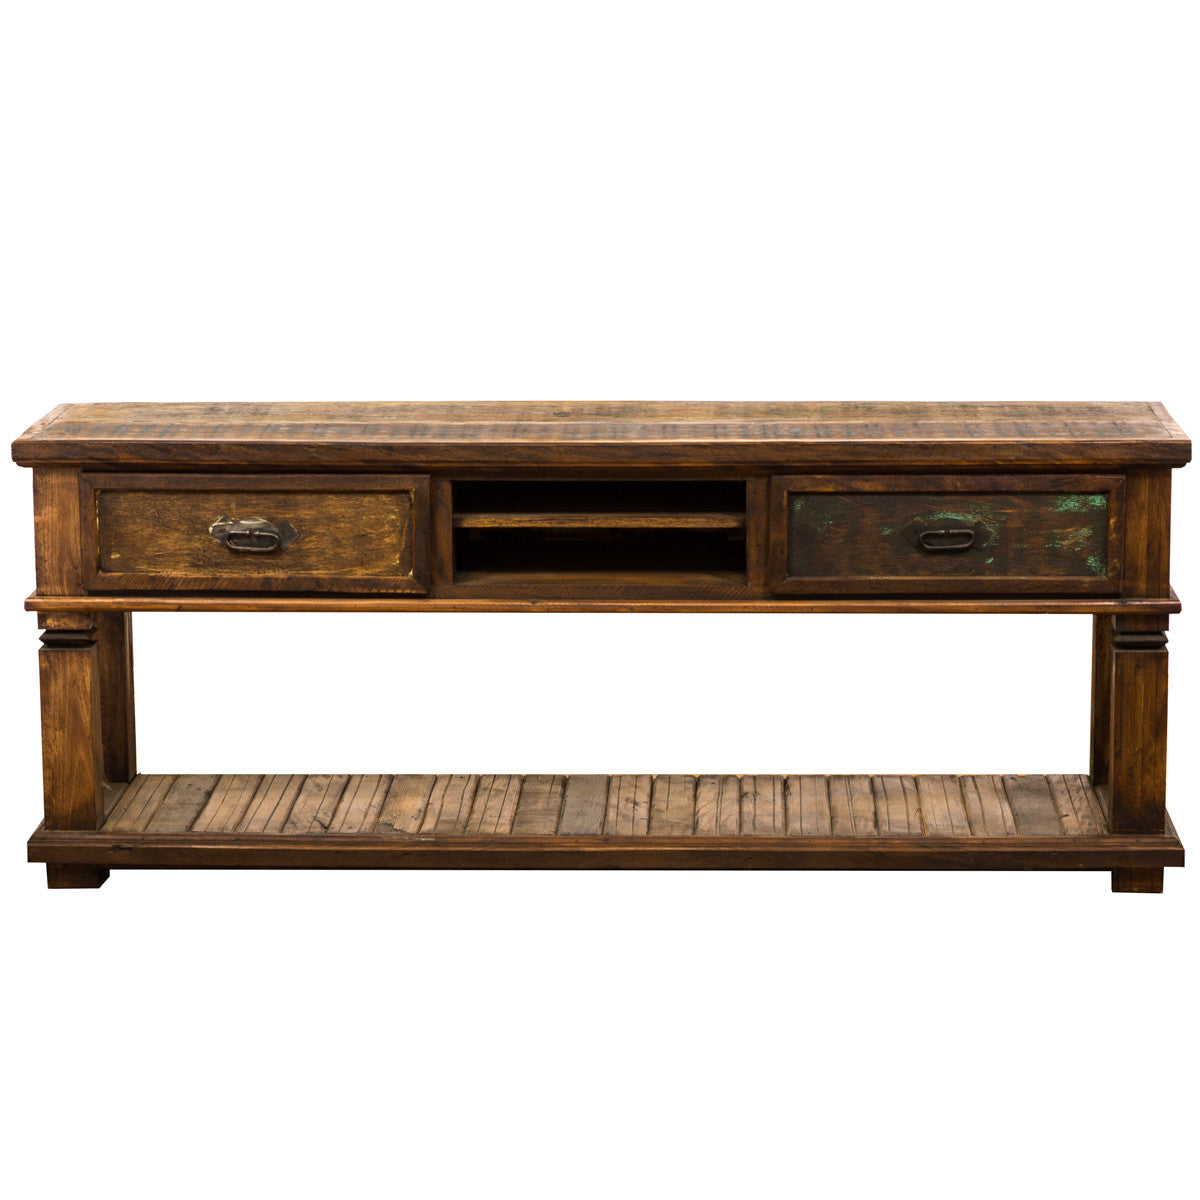 Rustic Reclaimed Wood 2 Drawer Console Table – Save The Planet Furniture